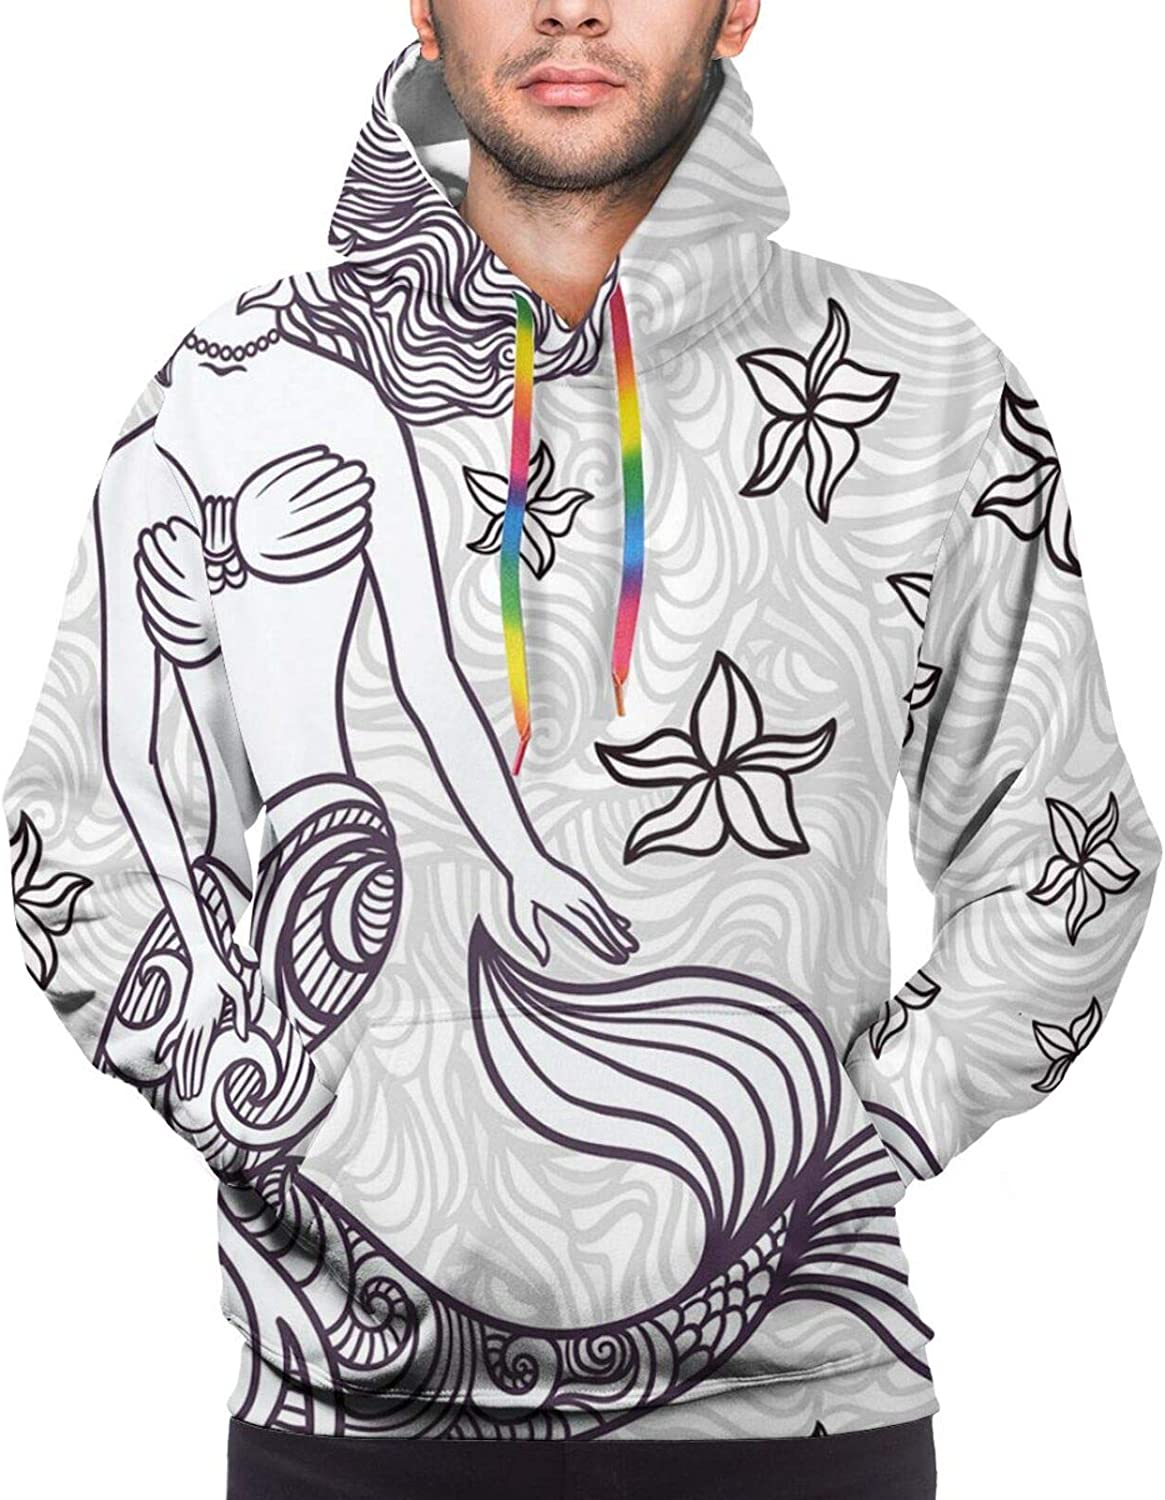 Men's Hoodies Sweatshirts,Ancient Magical Mermaid Woman in Waves with Shell Flower Nymph Mythological Art Print